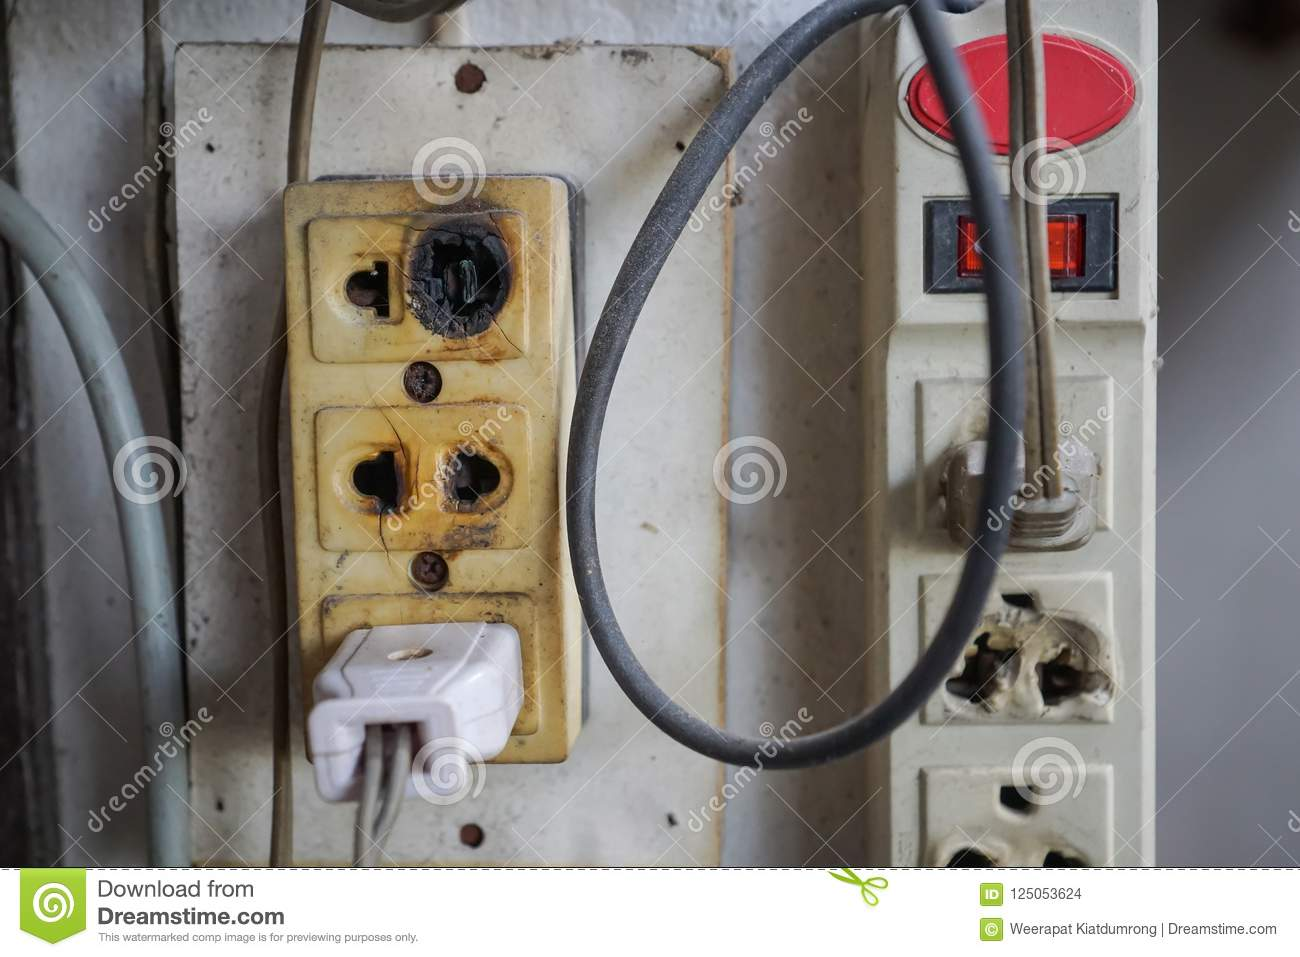 Electrical outlet burnt and damaged